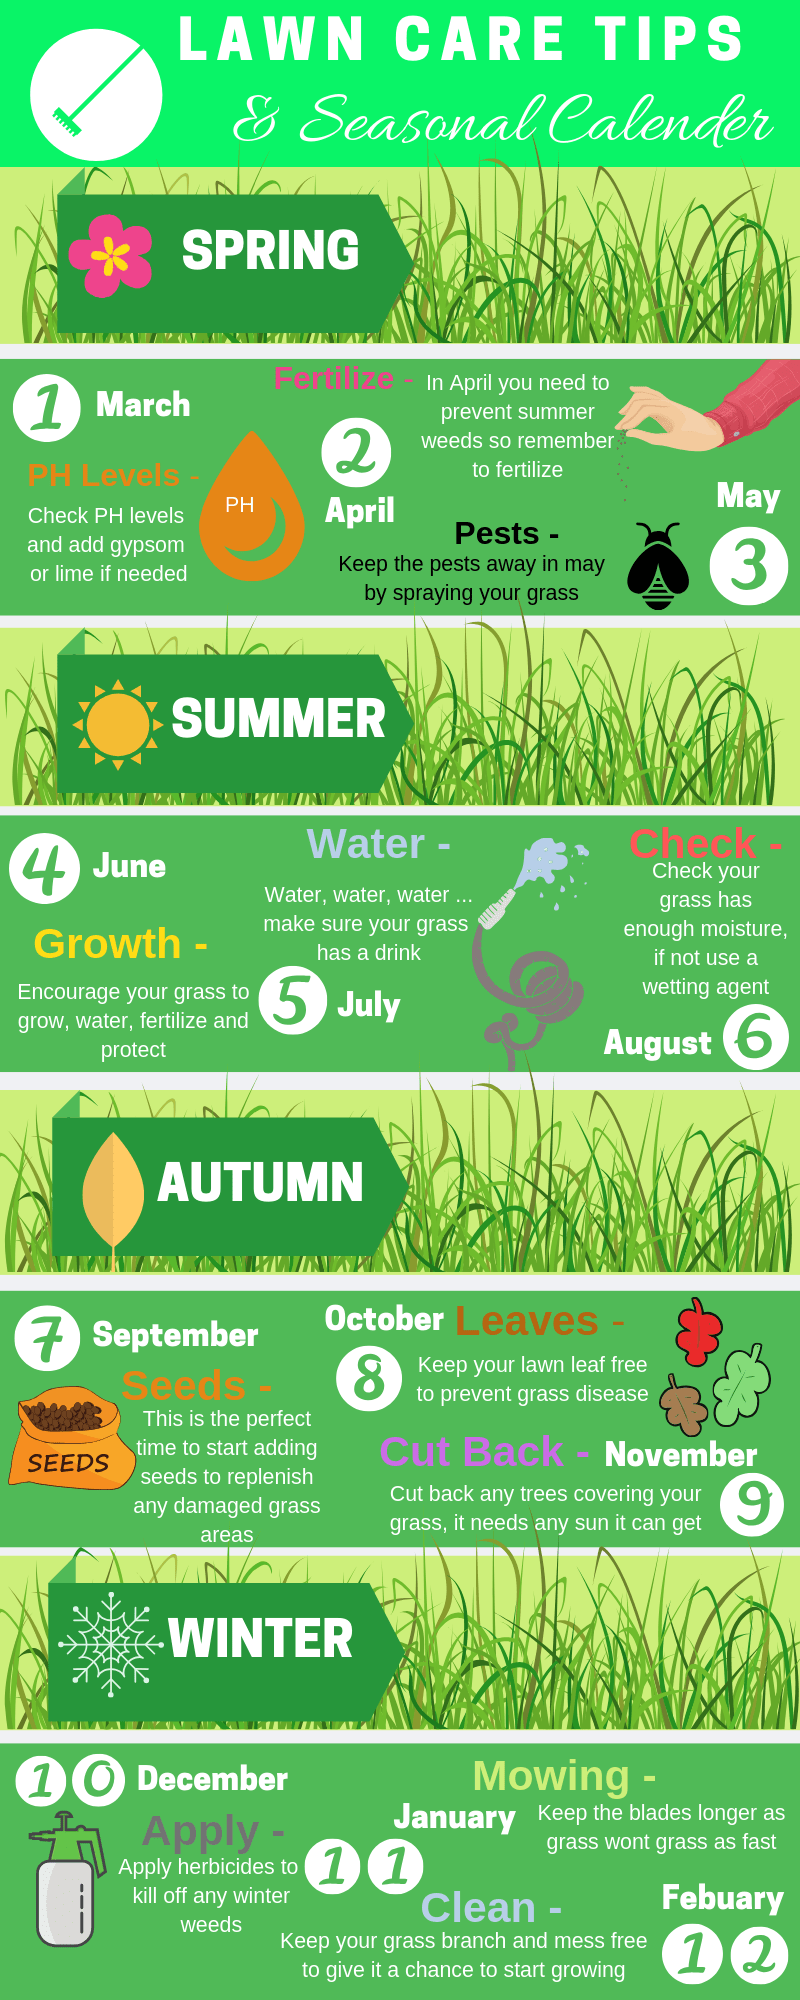 5 Best grass seeds (1)